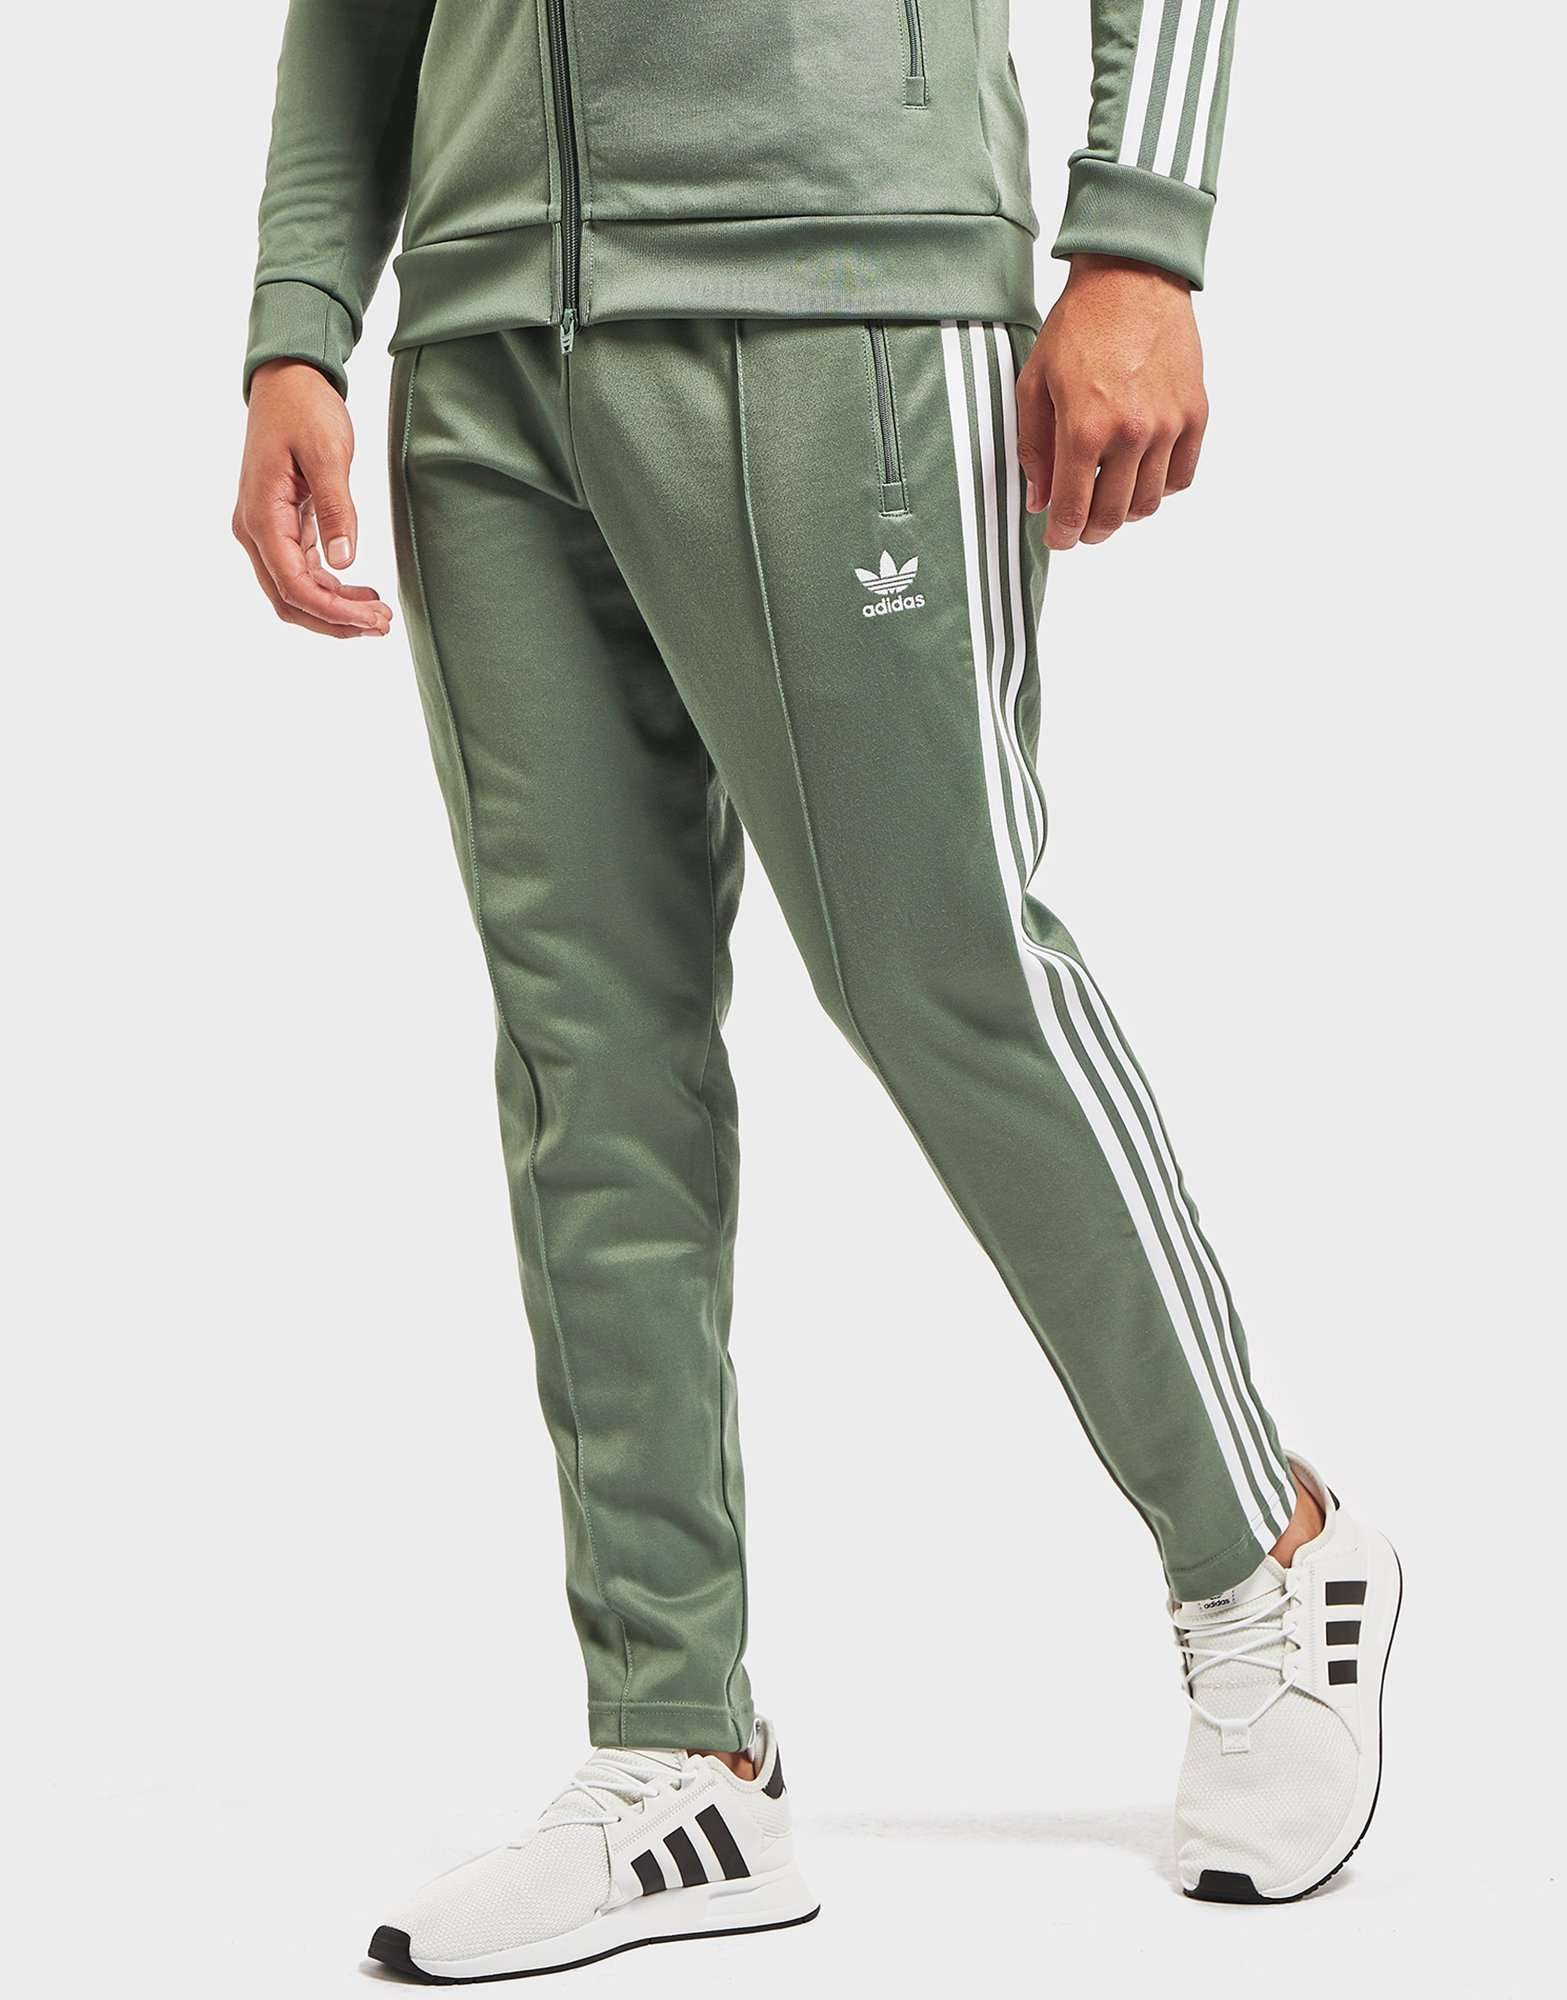 detailed look f57a7 c05ee adidas originals beckenbauer cuffed track pants